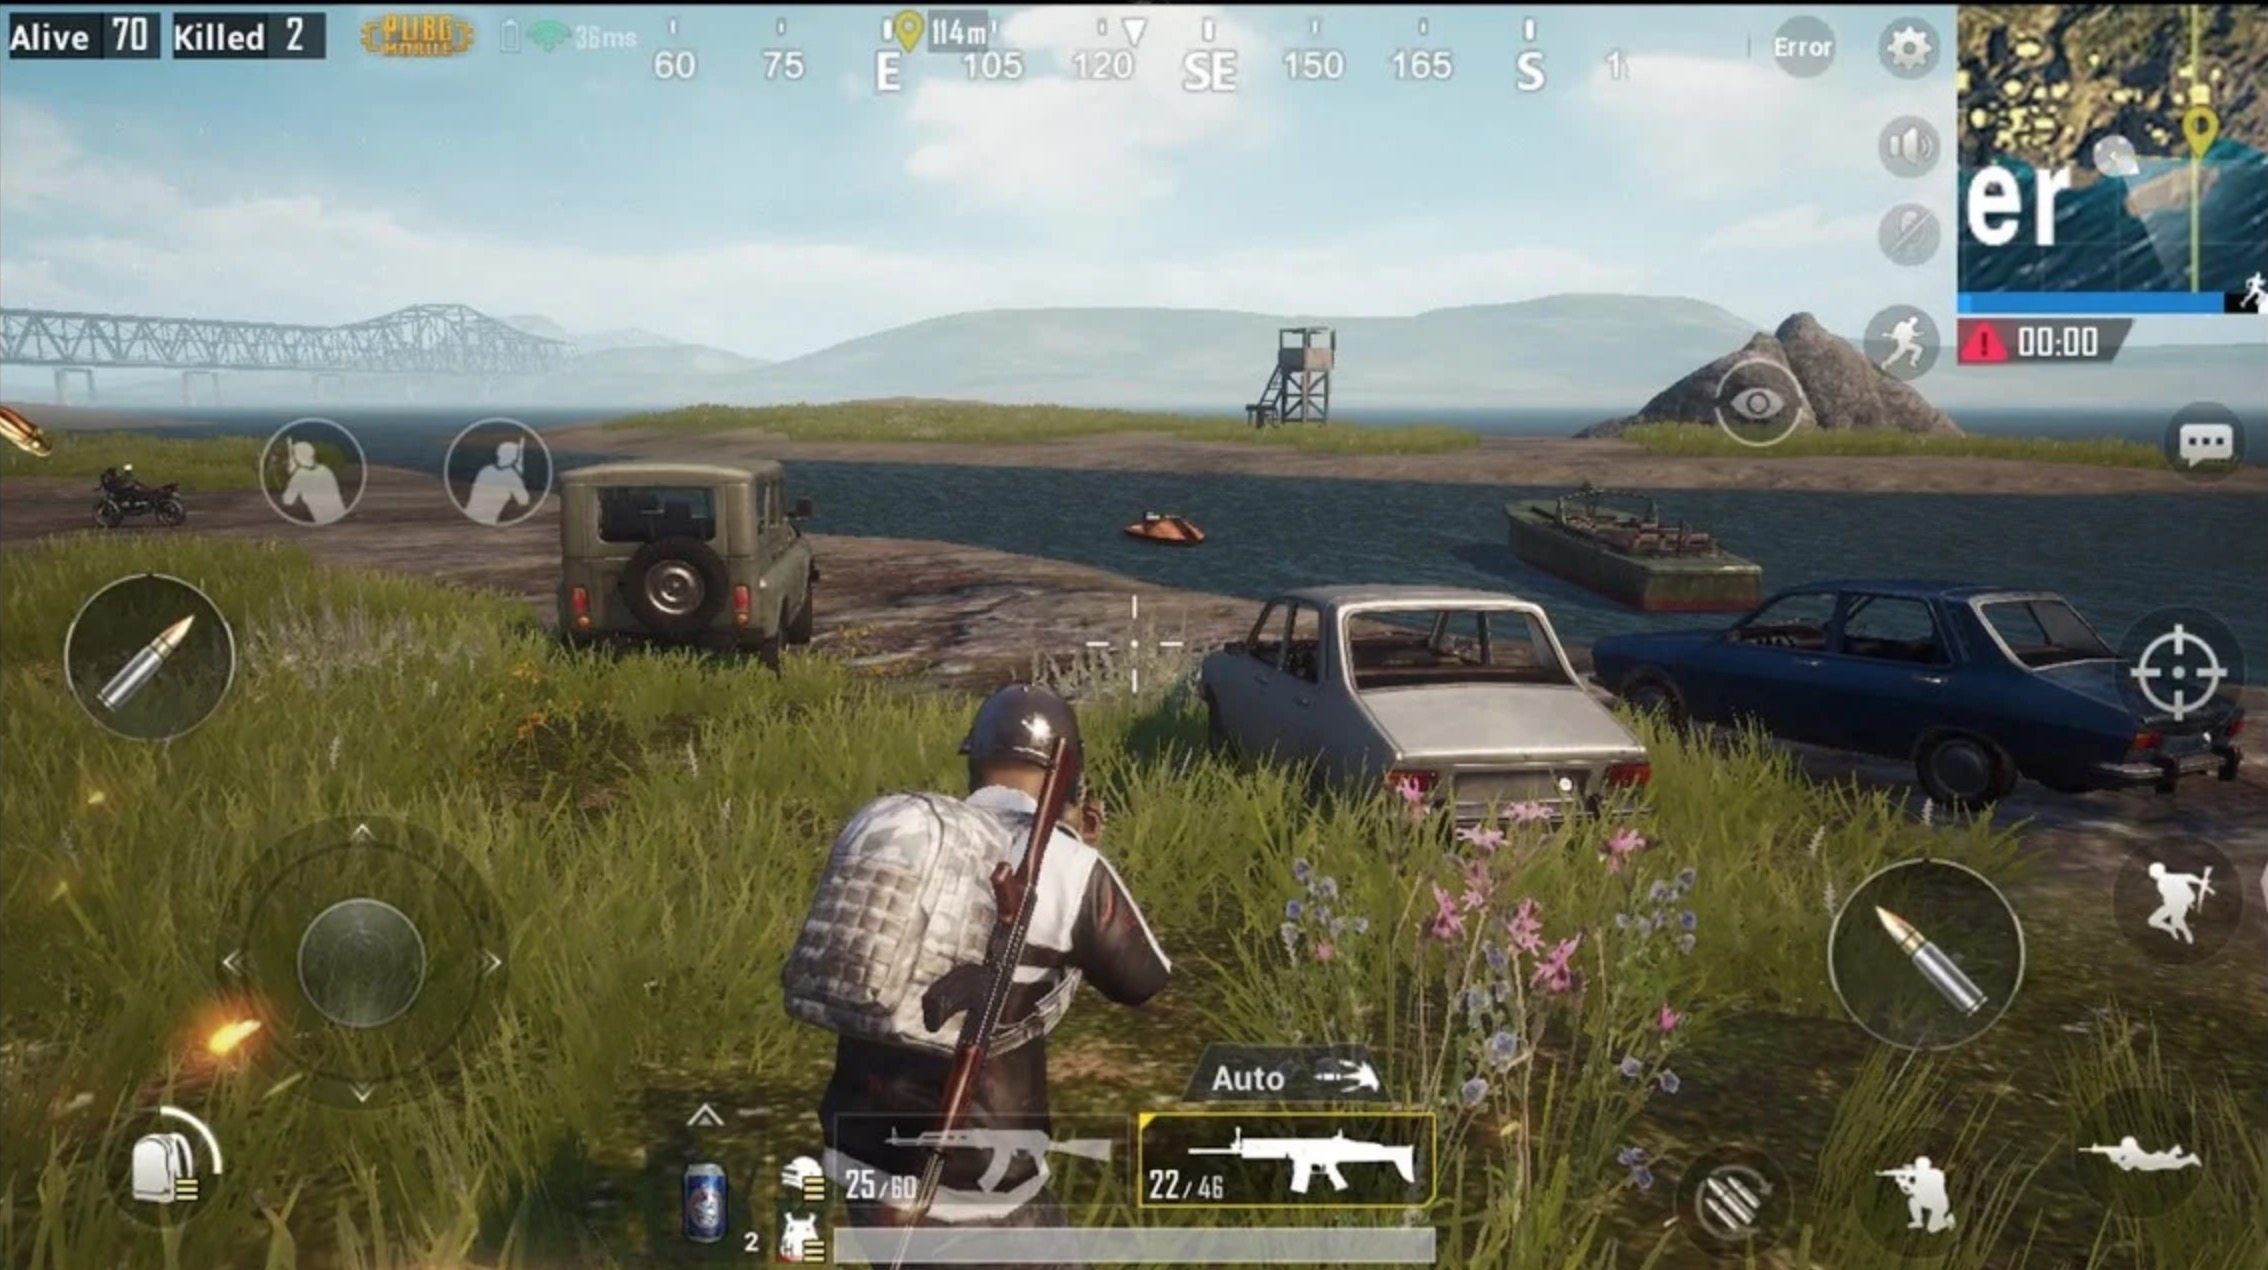 DOWNLOAD: PUBG Mobile for Android now available in the US